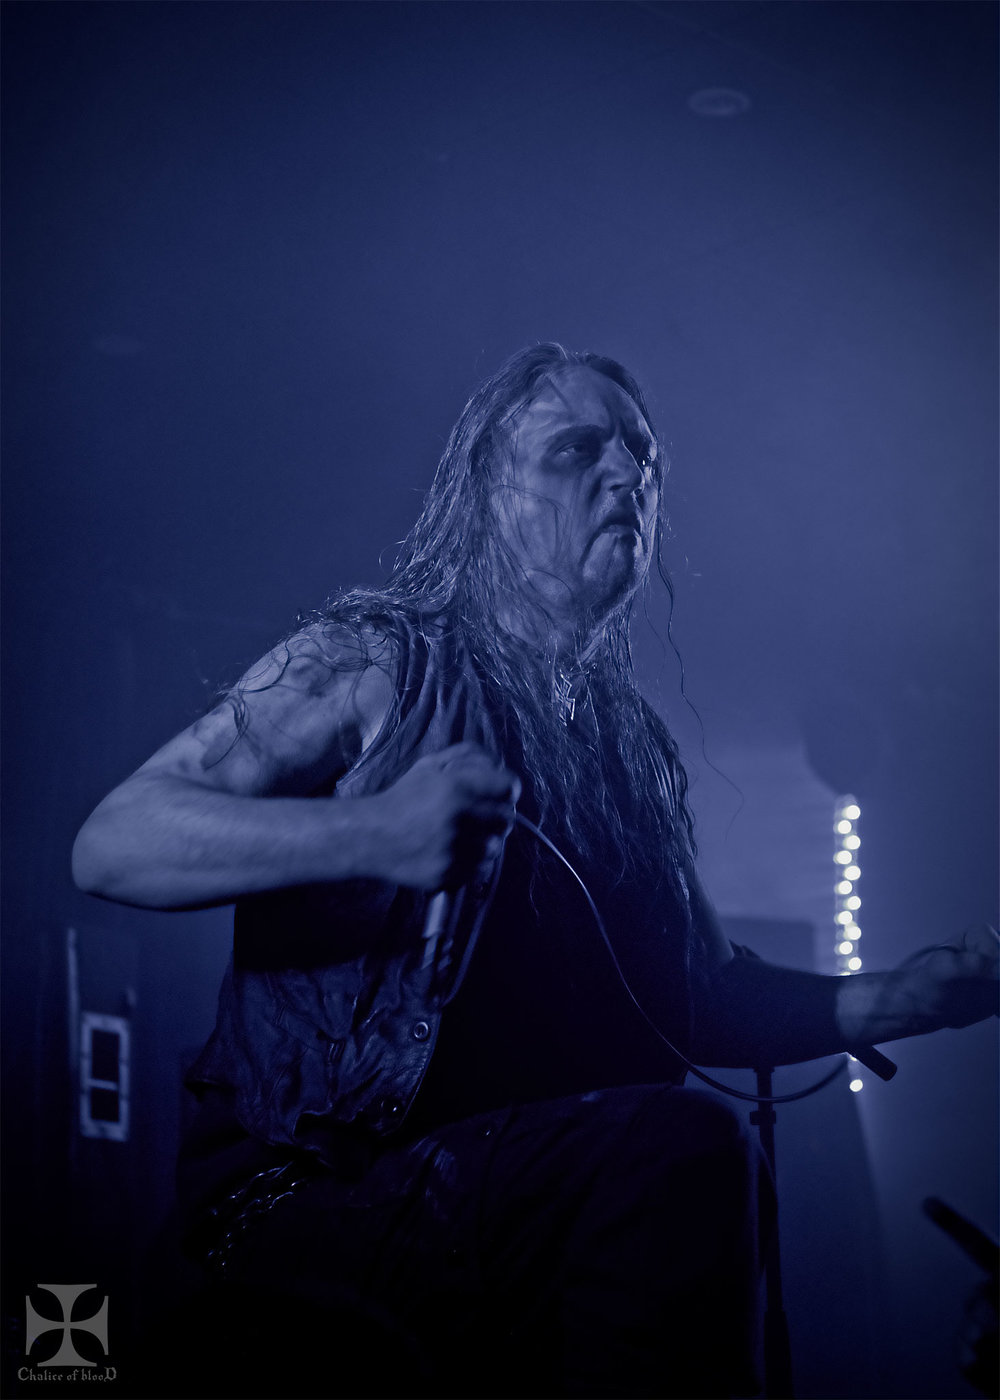 Marduk---57-watermarked.jpg